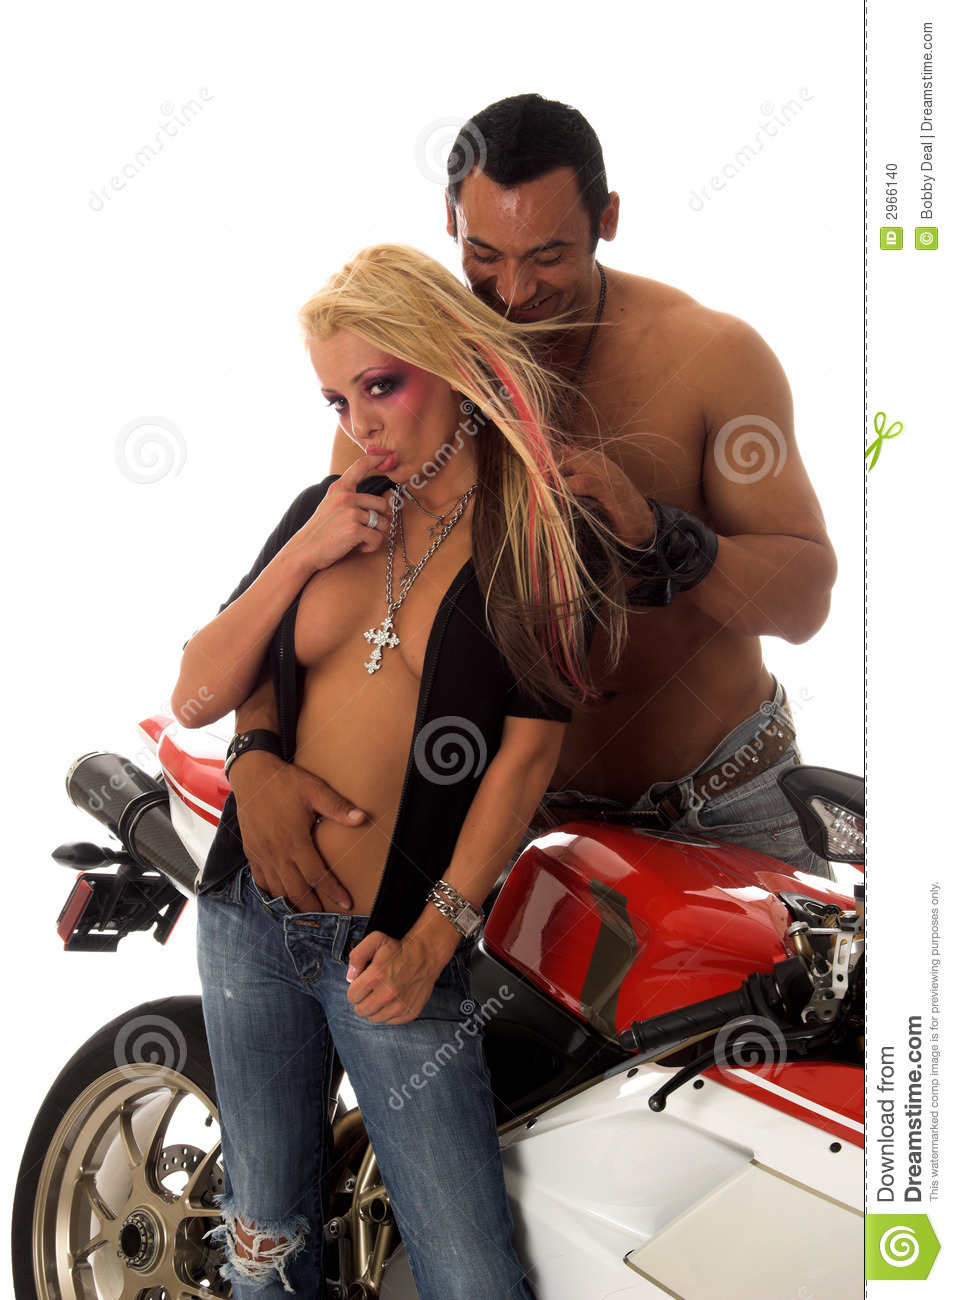 from Christian sexy couple on motorcycle